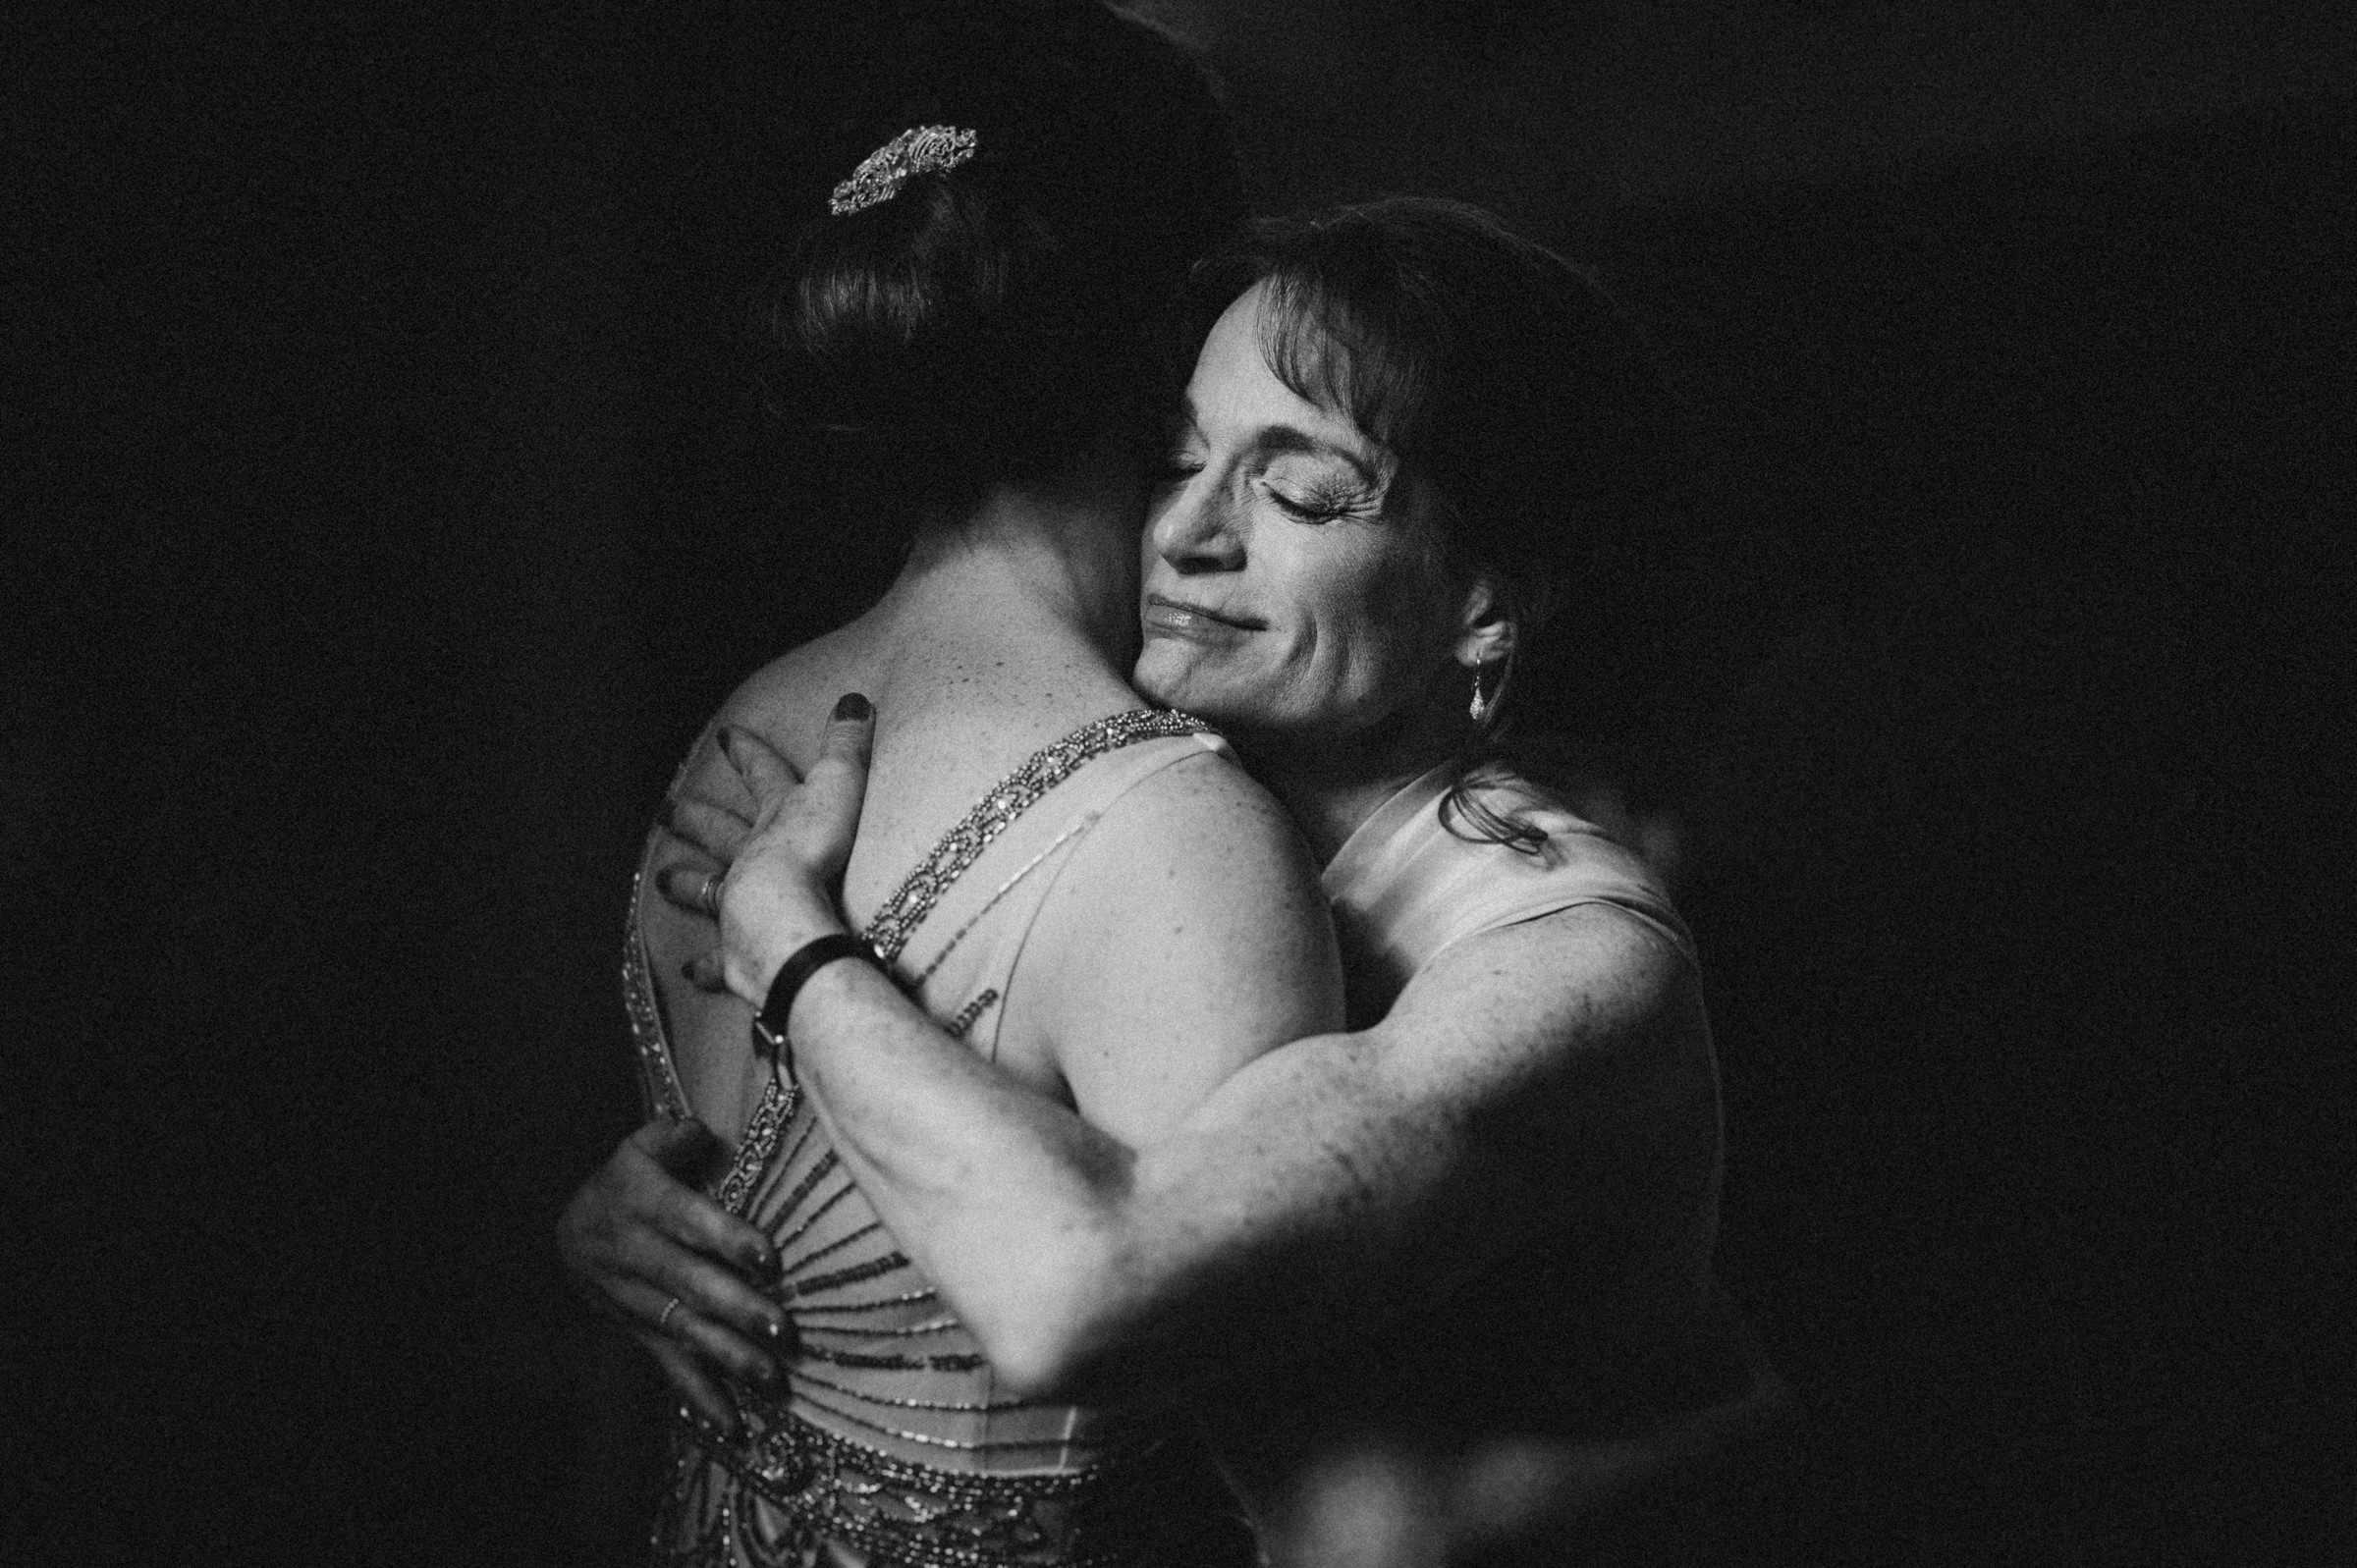 mother-hugging-her-daughter-sweetly-new-orleans-austin-houston-wedding-photo-by-dark-roux